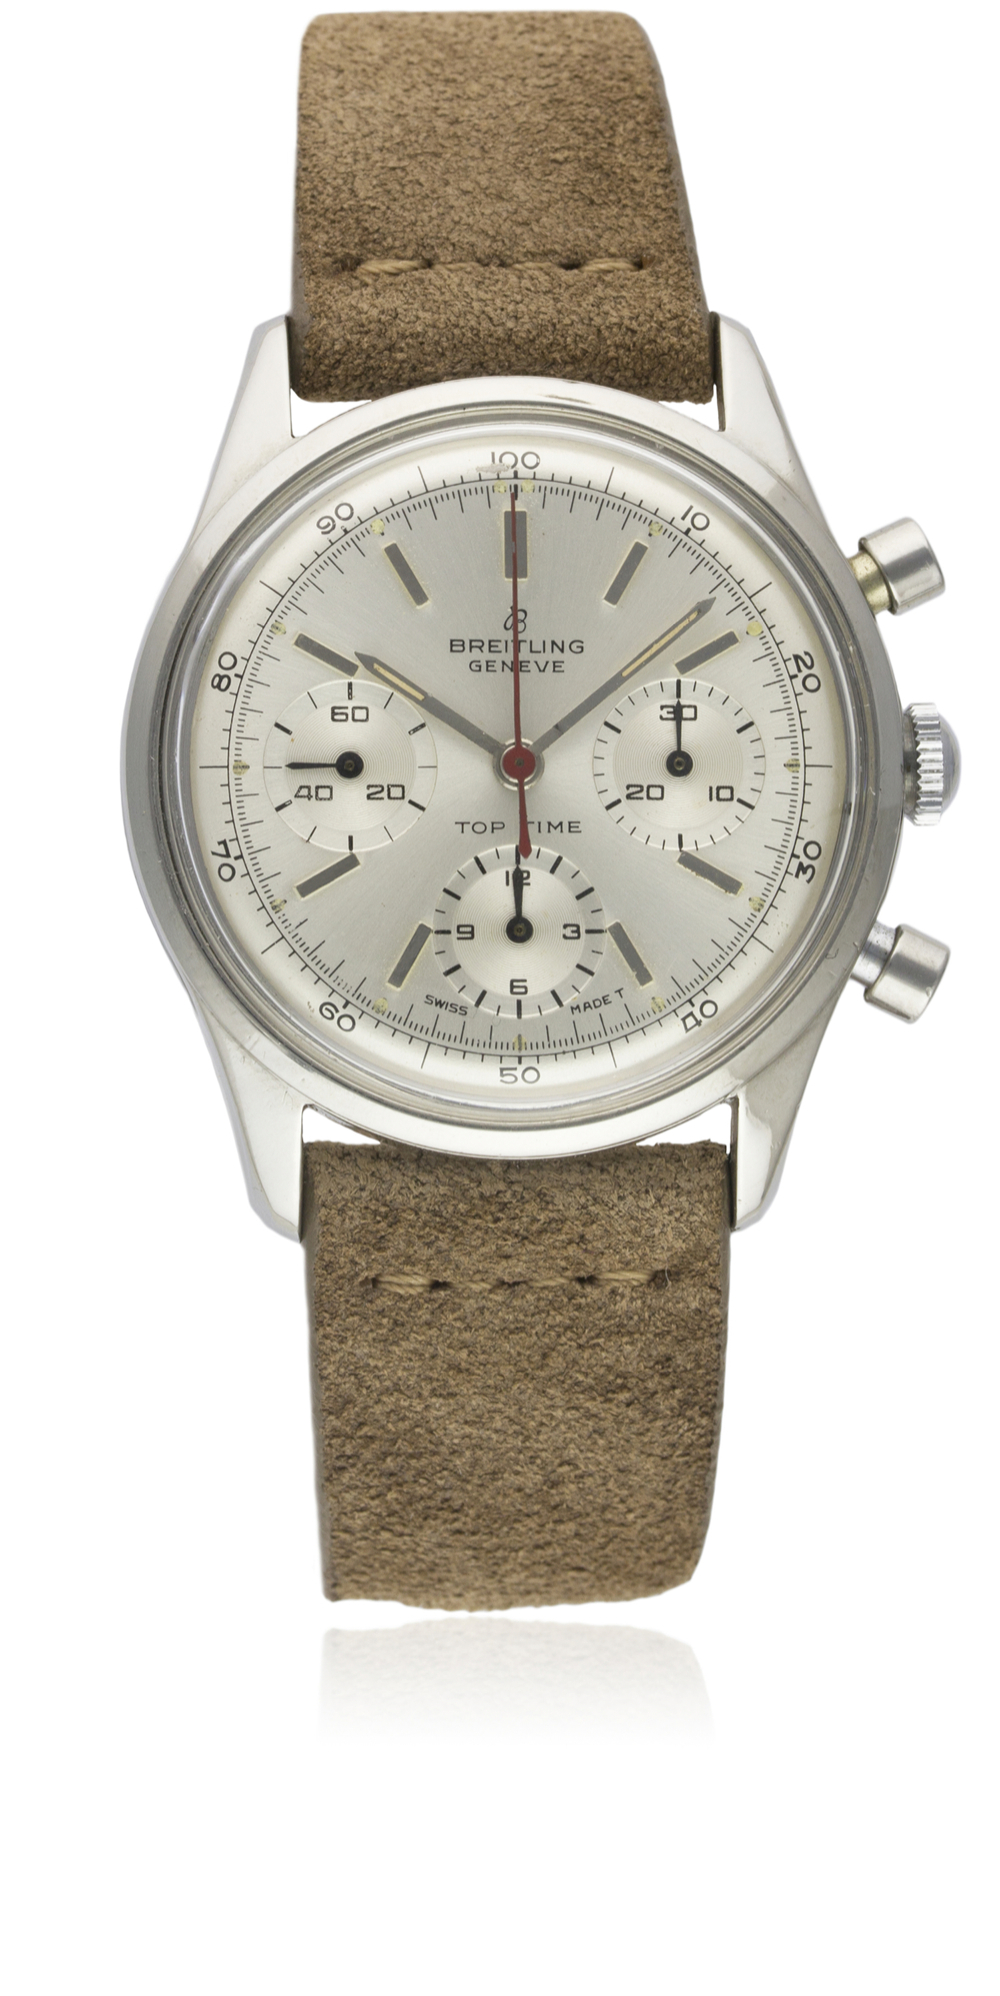 A VERY RARE GENTLEMAN'S STAINLESS STEEL BREITLING TOP TIME CHRONOGRAPH WRIST WATCH CIRCA 1964, - Image 3 of 10